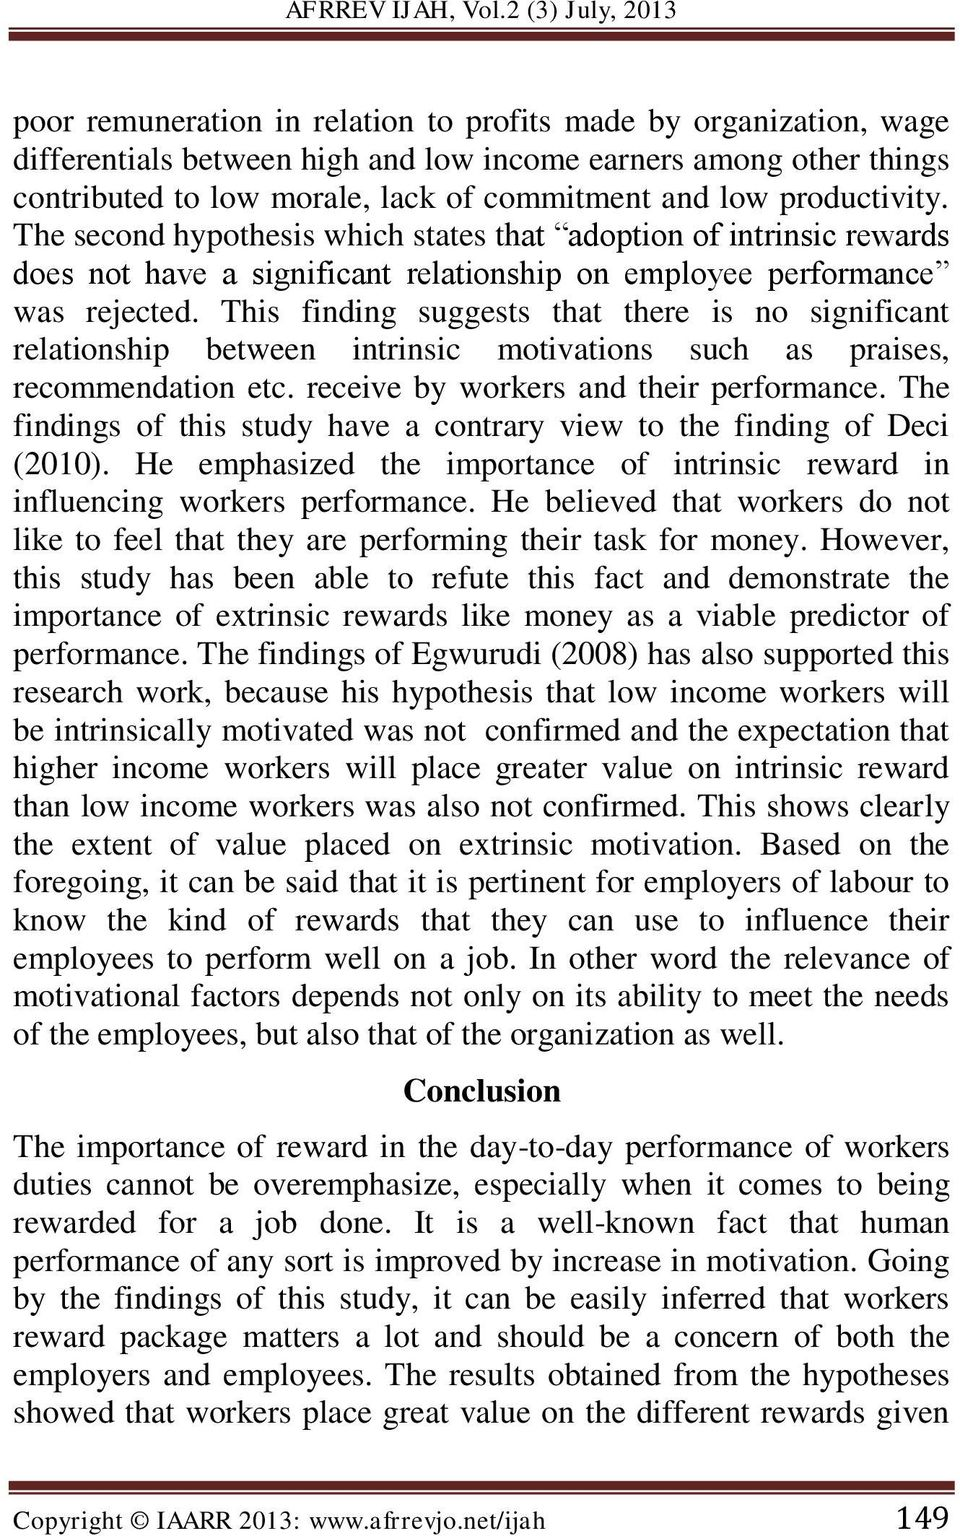 This finding suggests that there is no significant relationship between intrinsic motivations such as praises, recommendation etc. receive by workers and their performance.